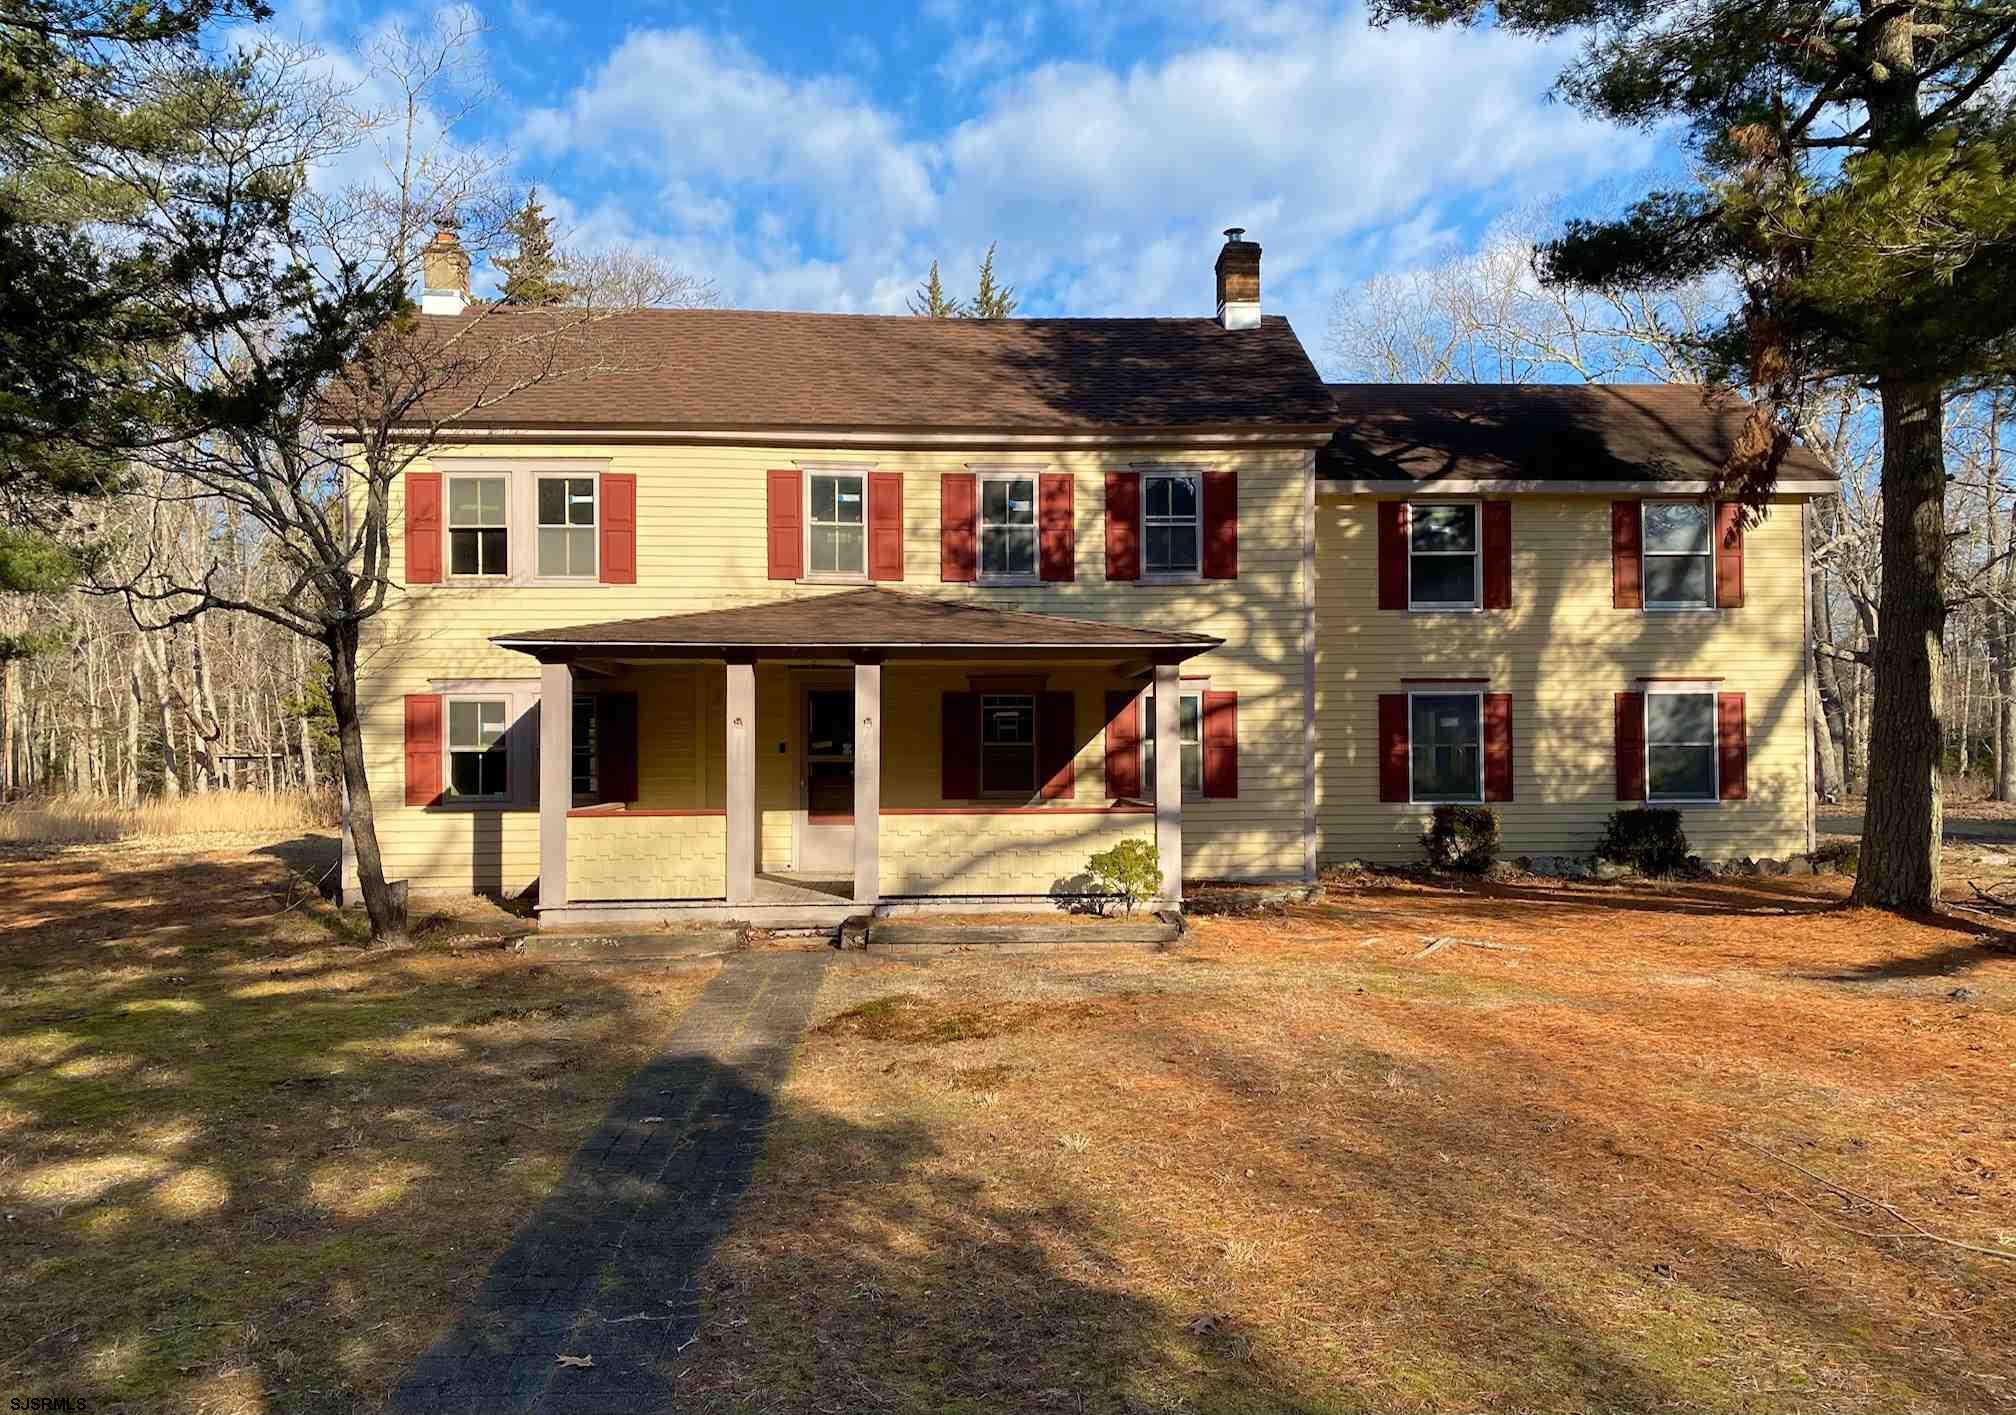 Restore to it's Original Beauty! Built in 1835, this three bedroom, one and half bath, colonial home